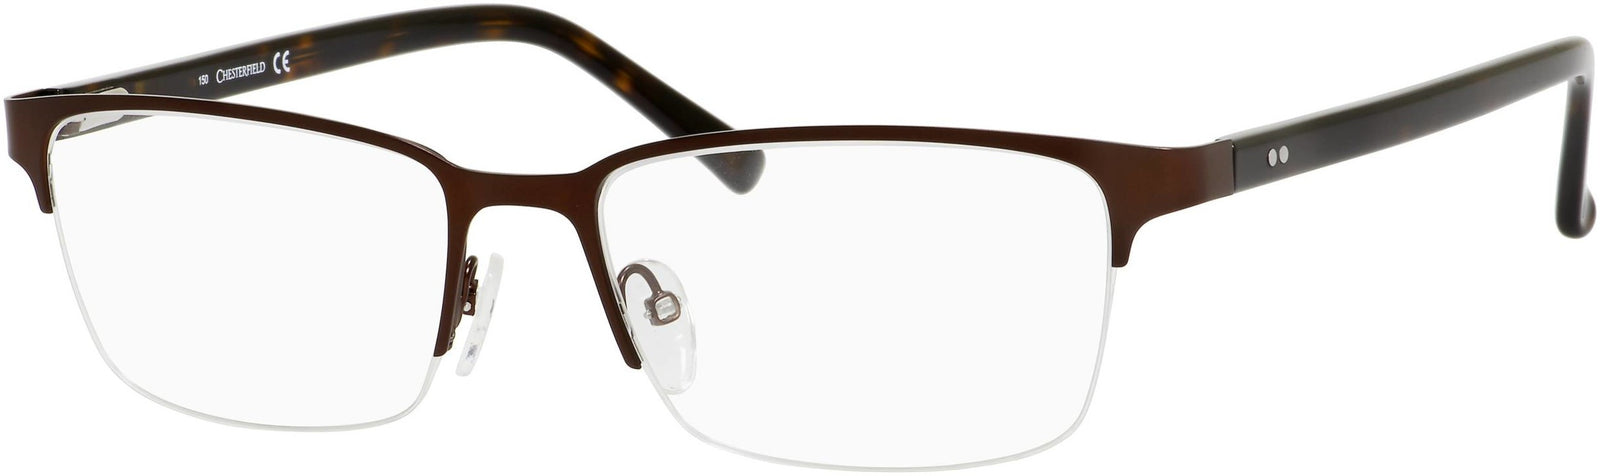 Chesterfield Chesterfield 29XL 01P5 Eyeglasses Brown